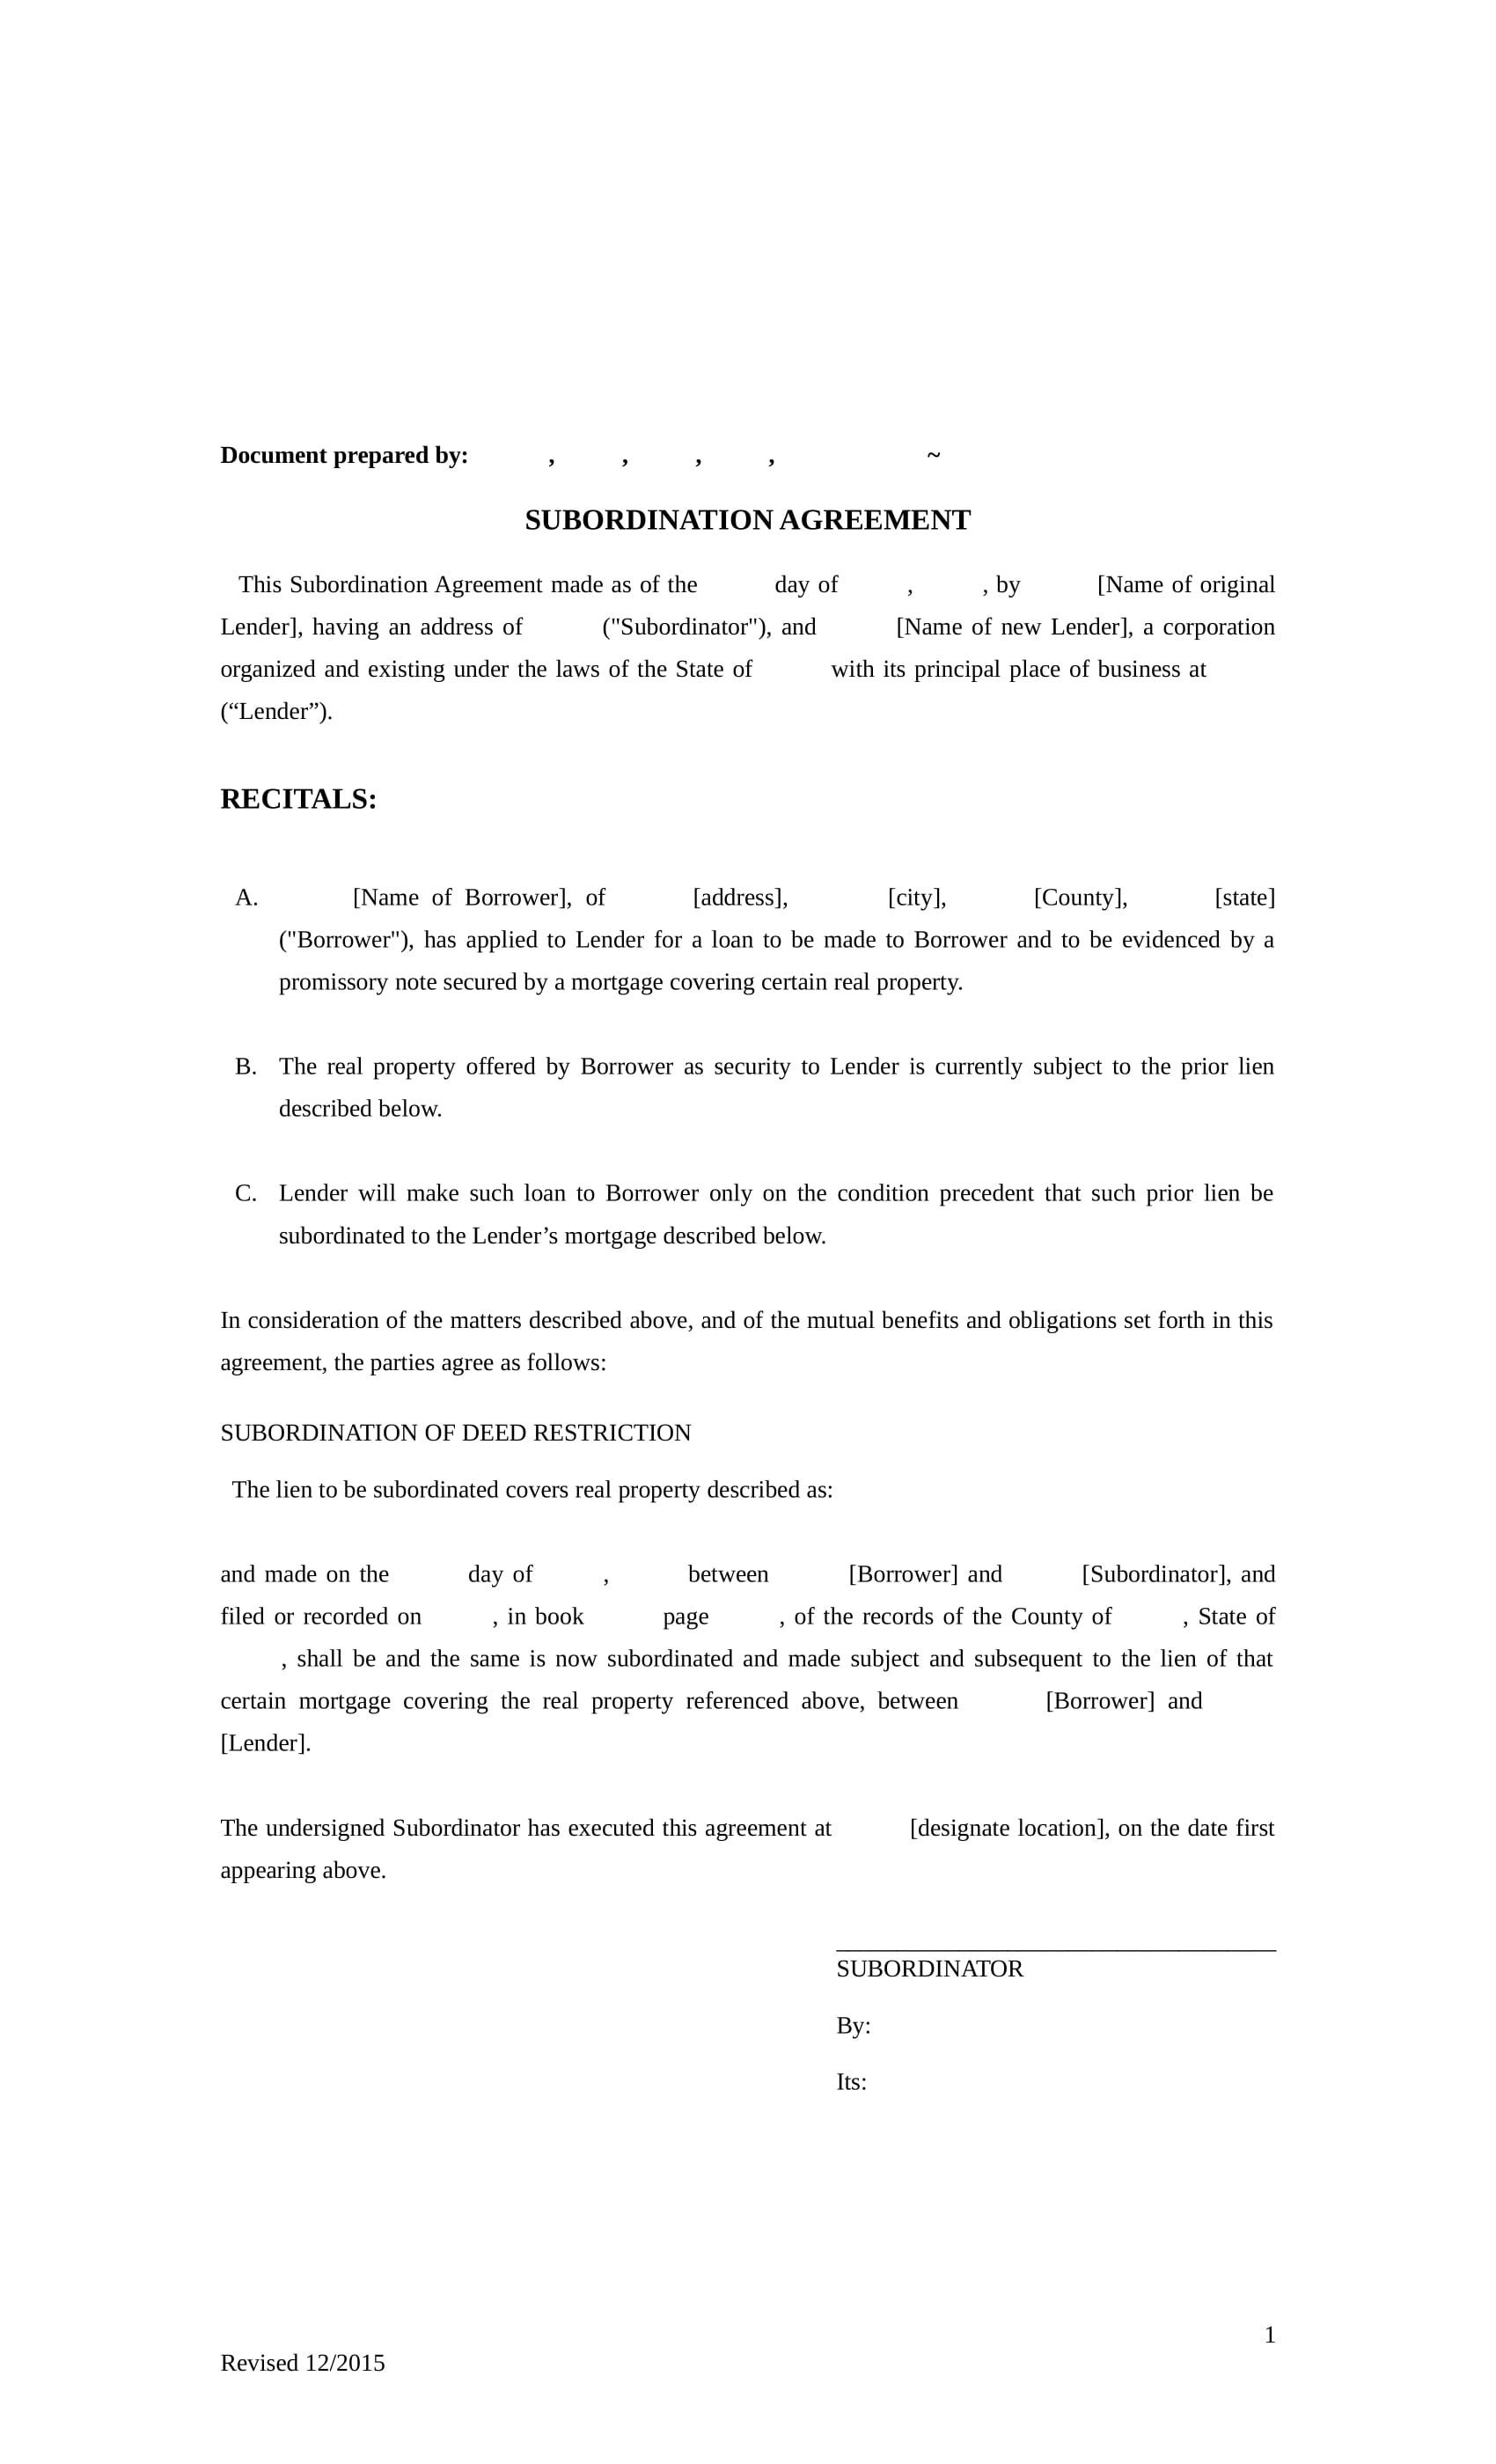 subordination agreement contract form in doc 1